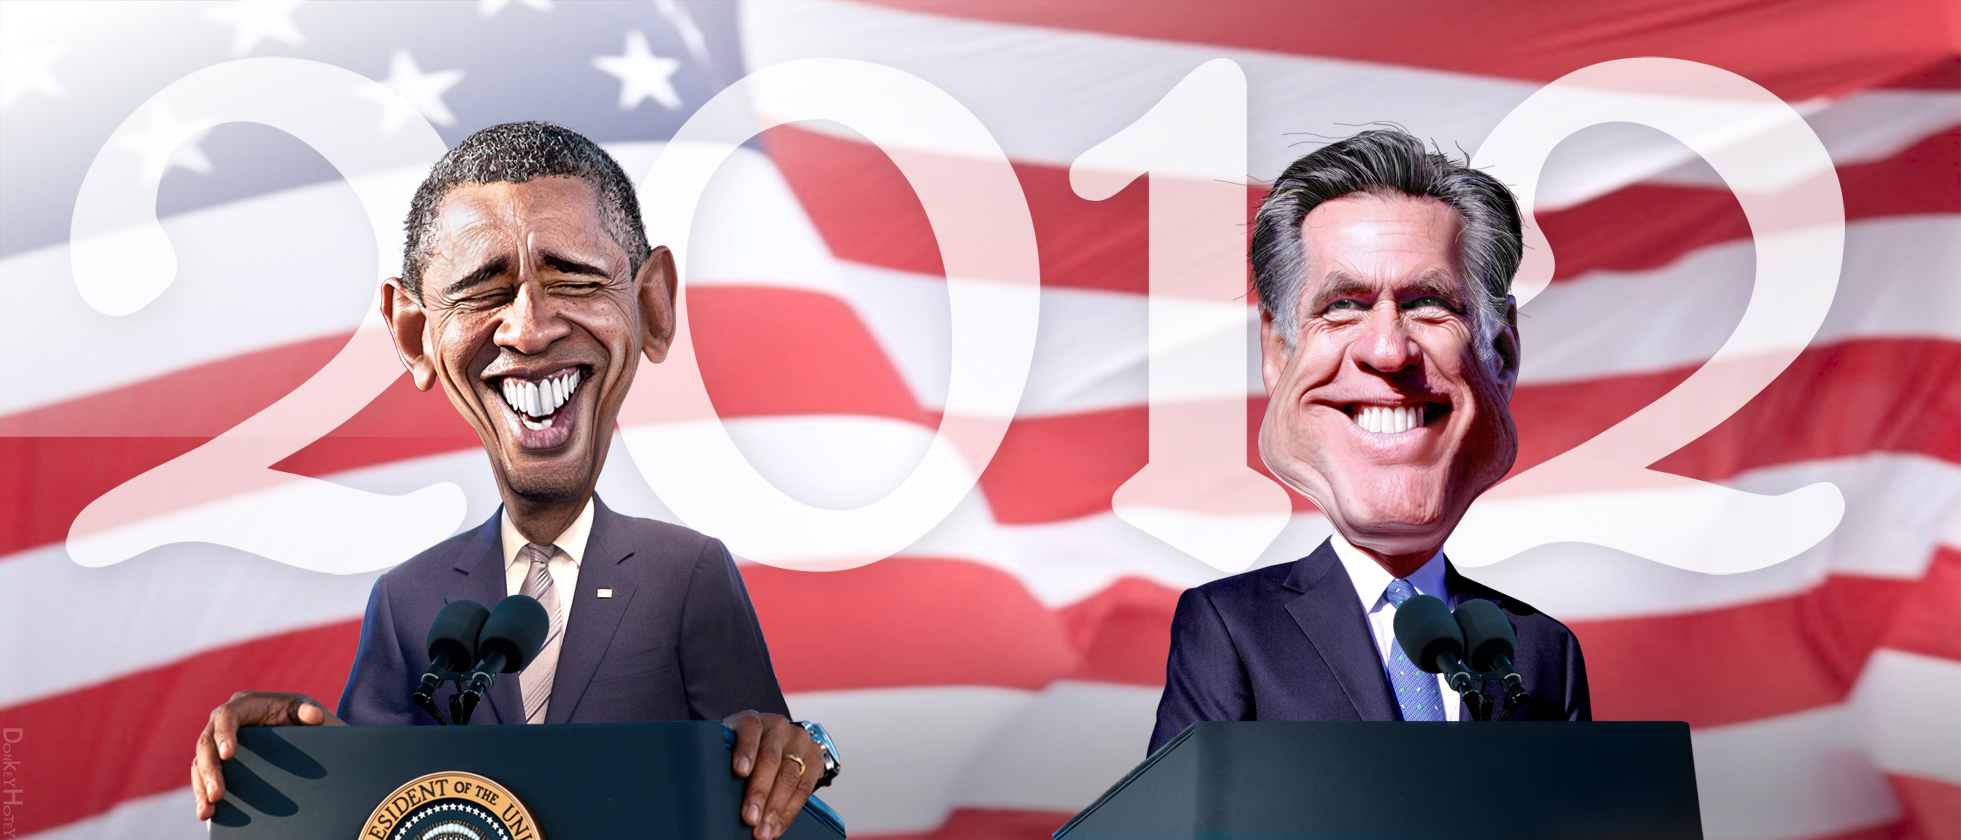 Obama and Romney caricature